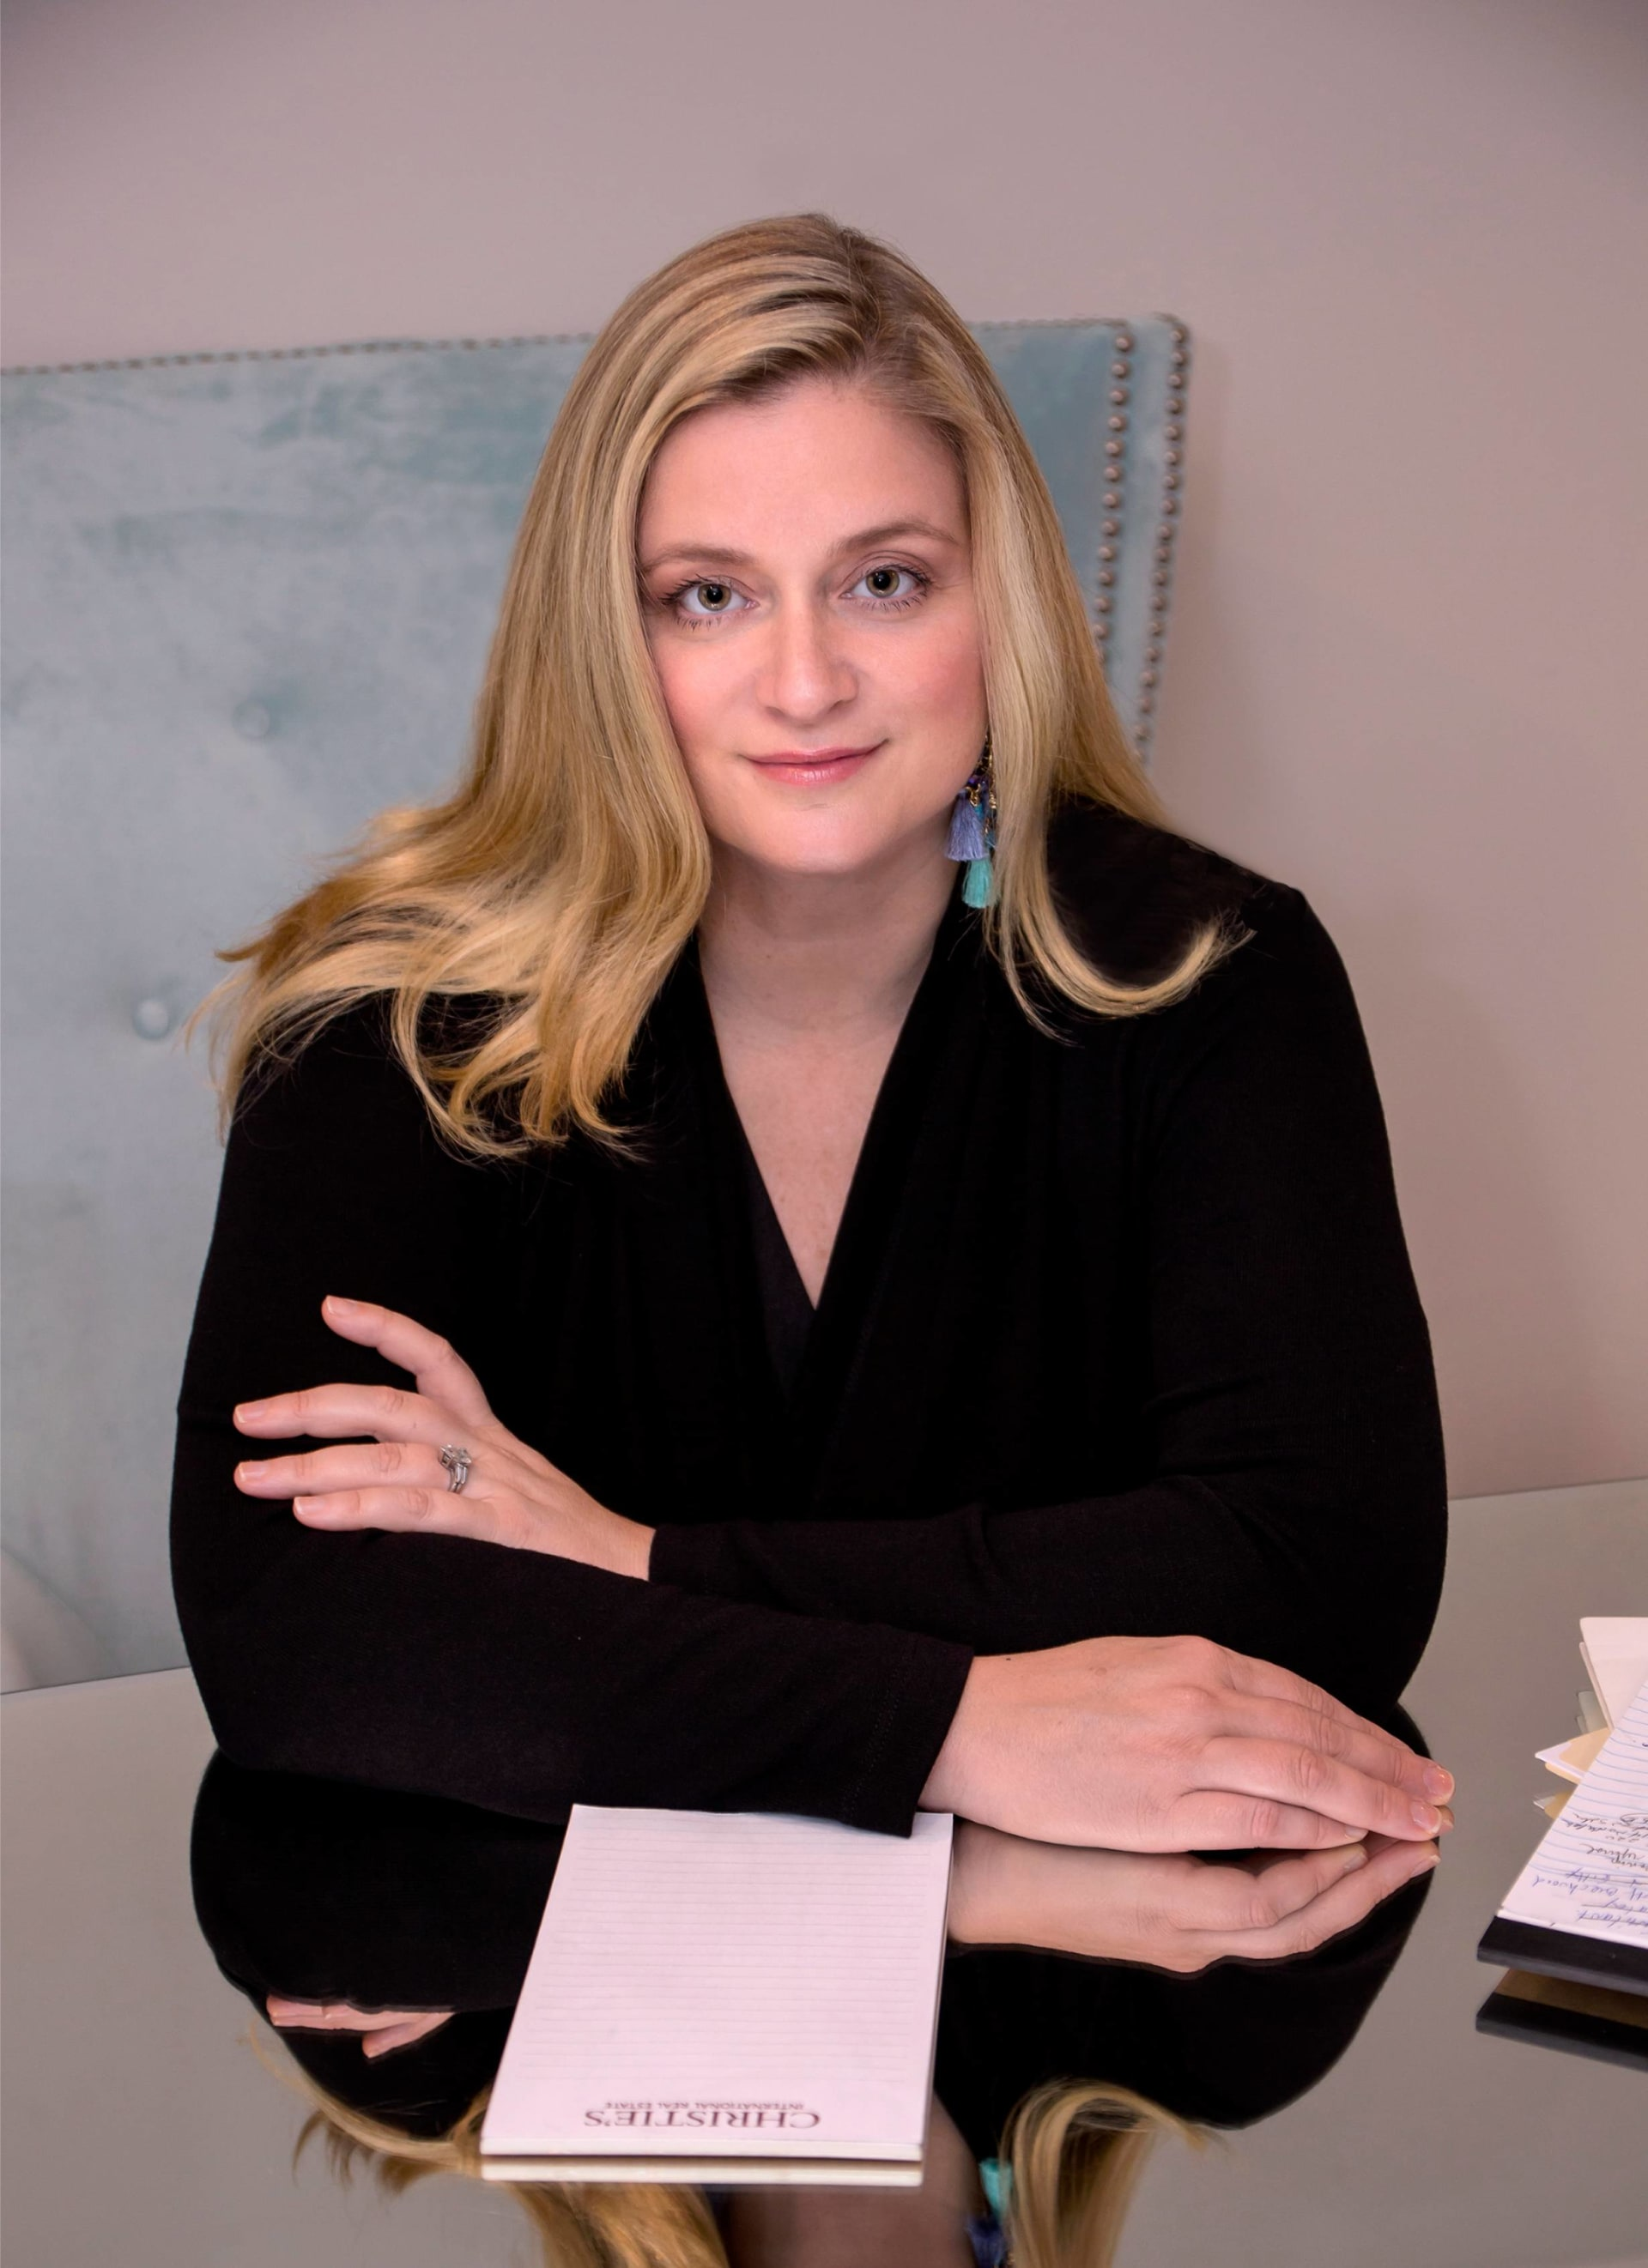 CHRISTINA GIBBONS GROUP: EXCLUSIVE REAL ESTATE SERVICES